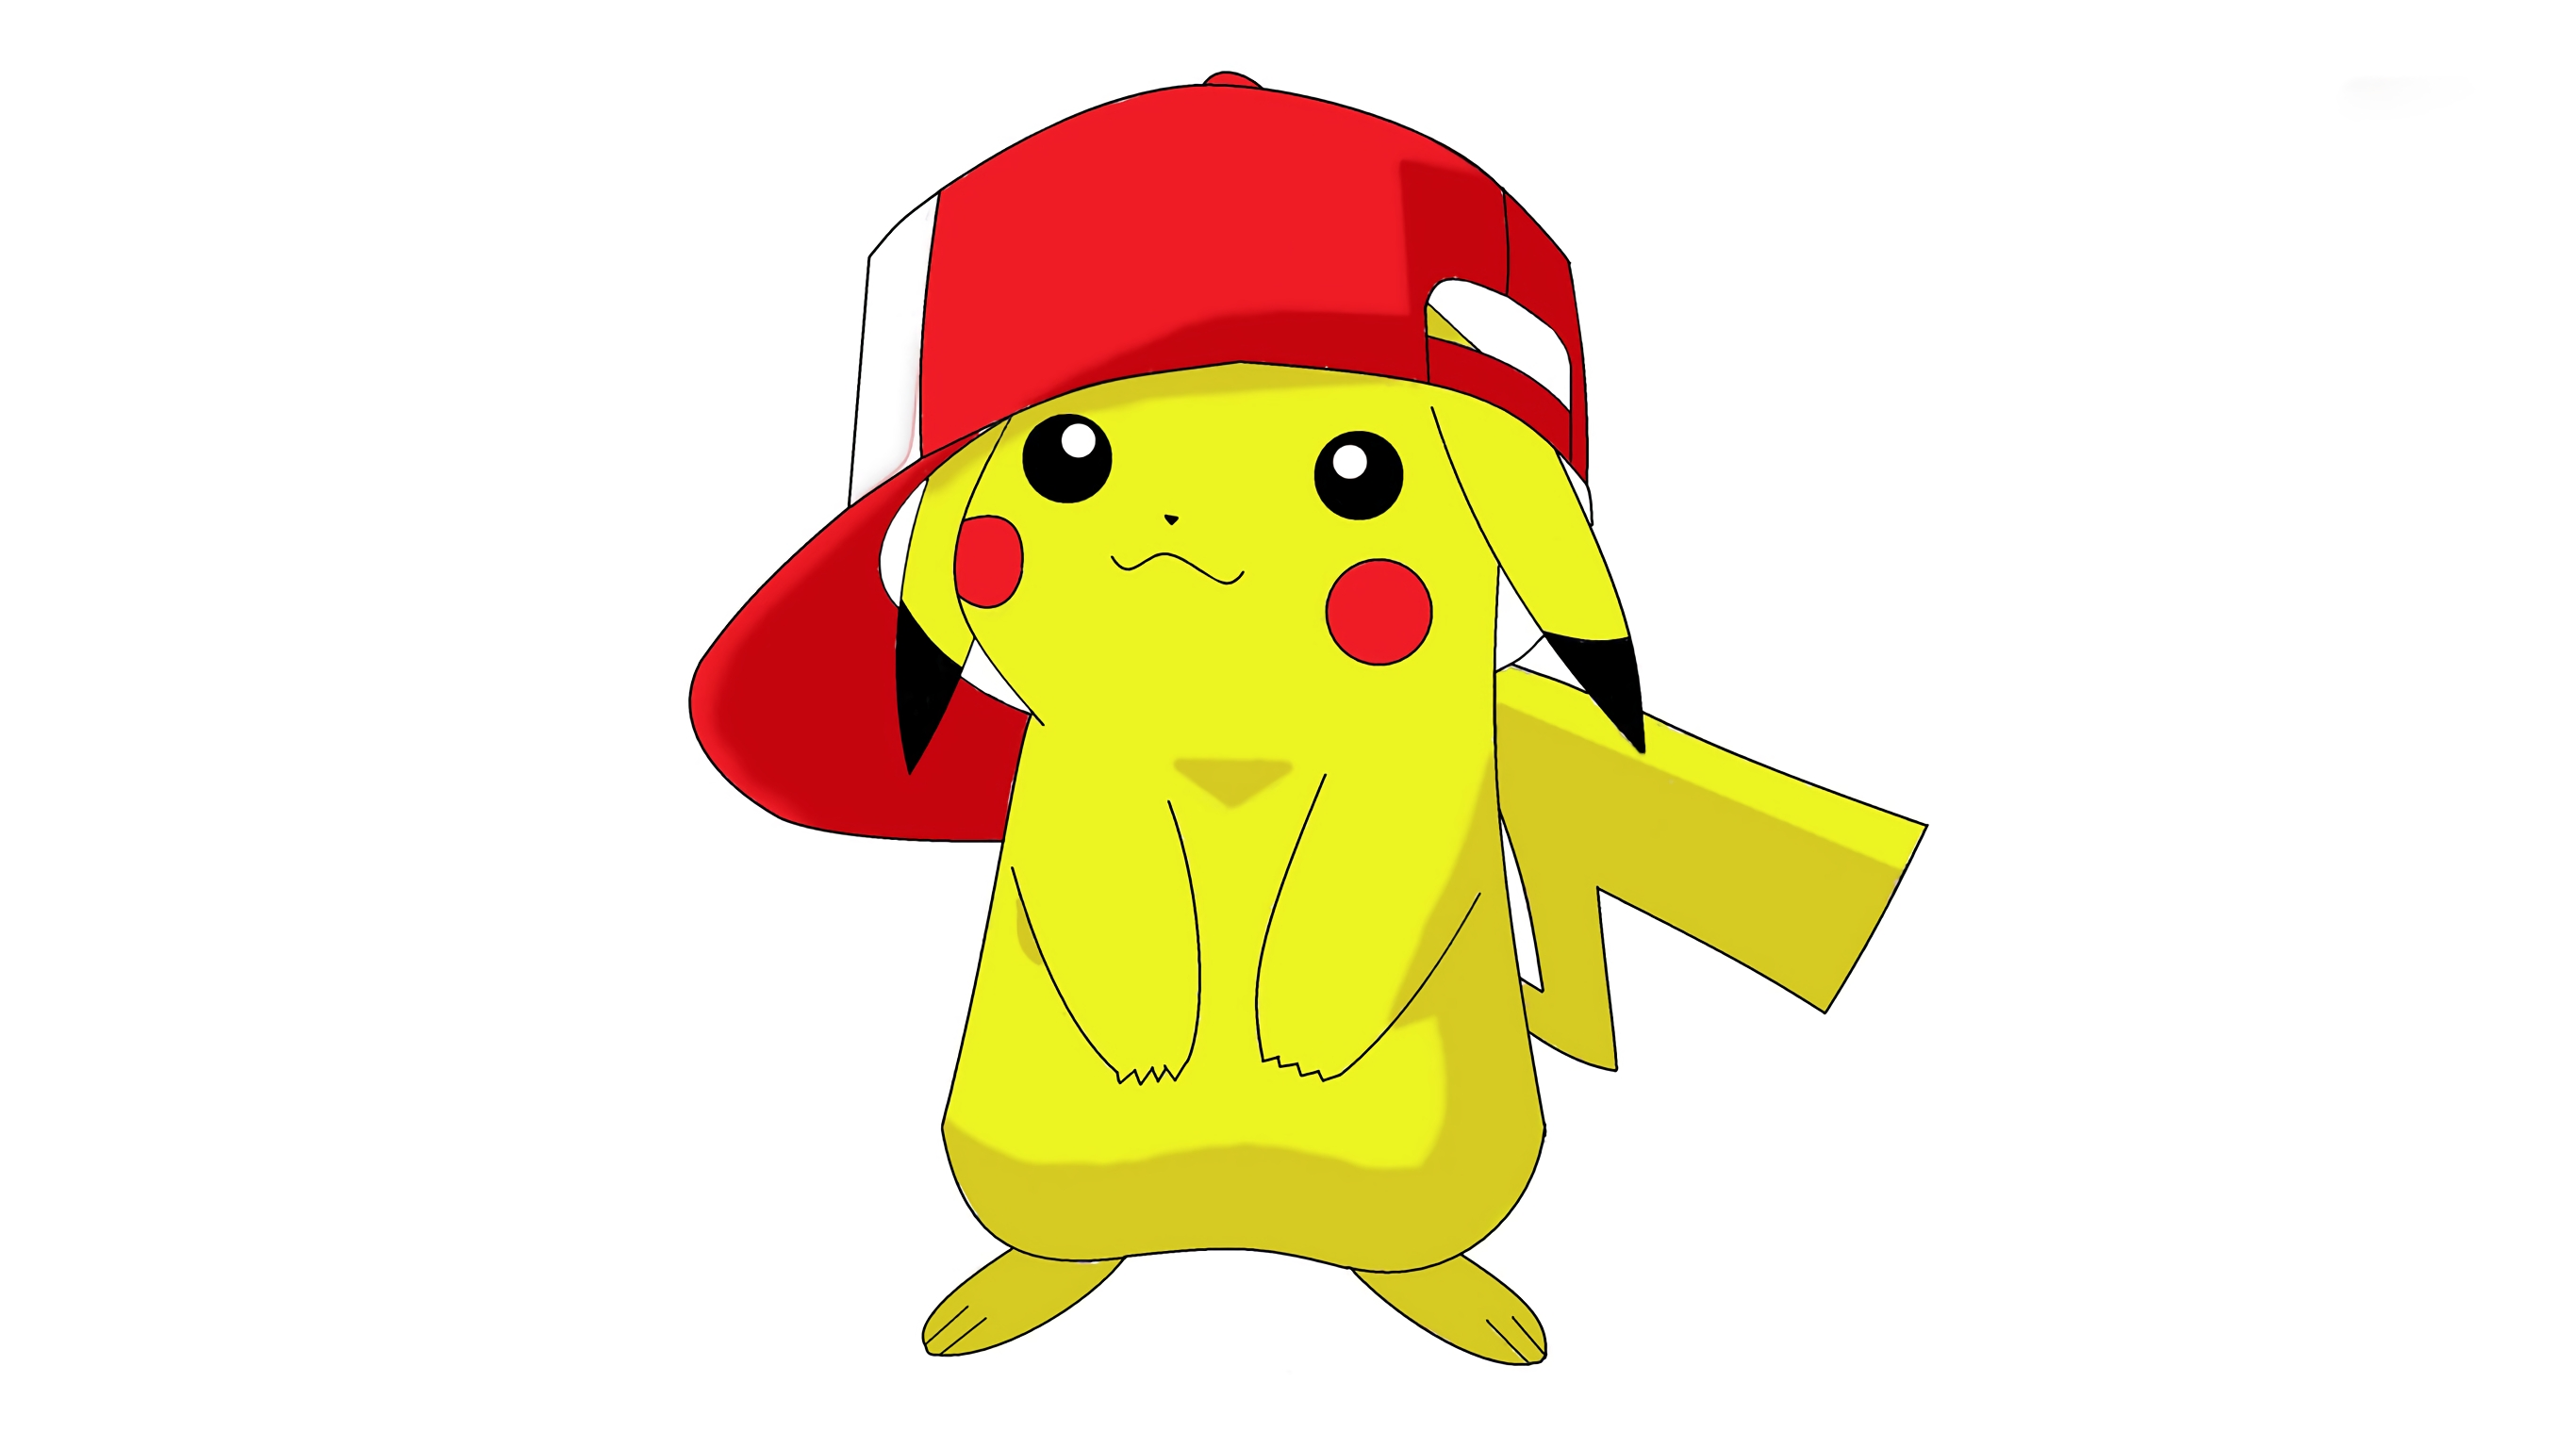 Anime Wallpaper Pikachu with cap